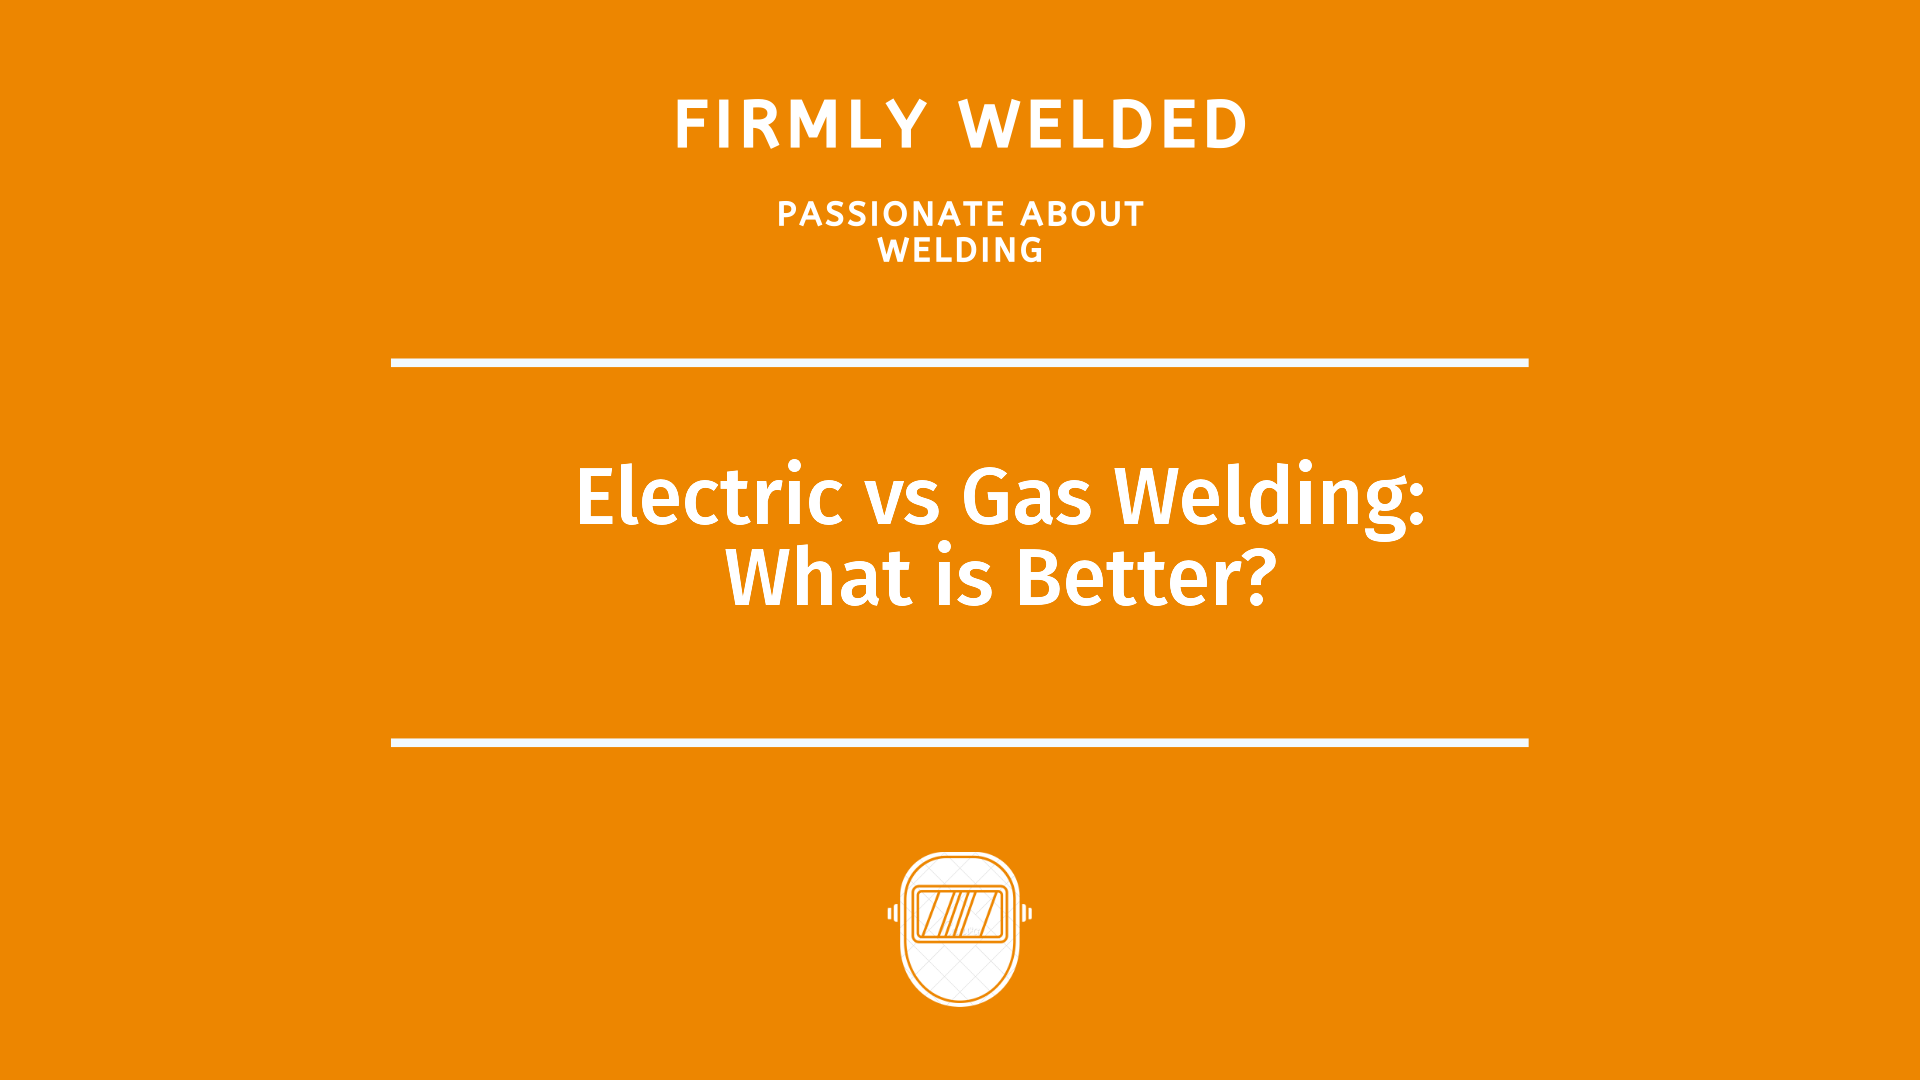 Electric vs Gas Welding: What is Better?